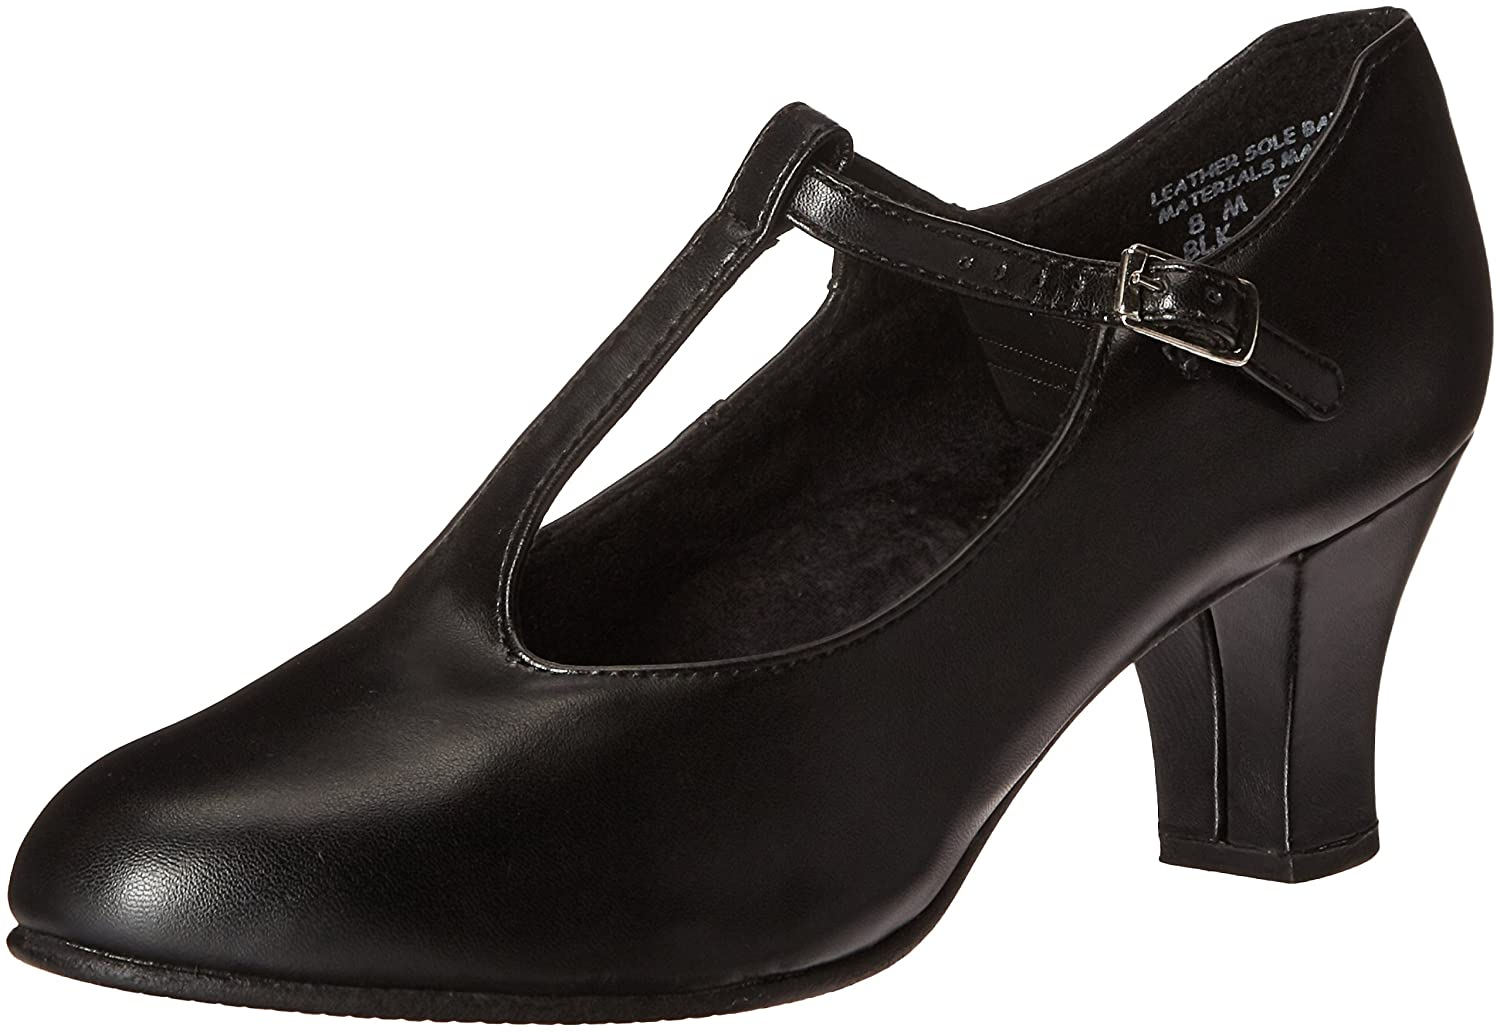 Capezio Women's Jr. Footlight T-Strap Dance Shoe B008QR7L74 6 B(M) US|Black